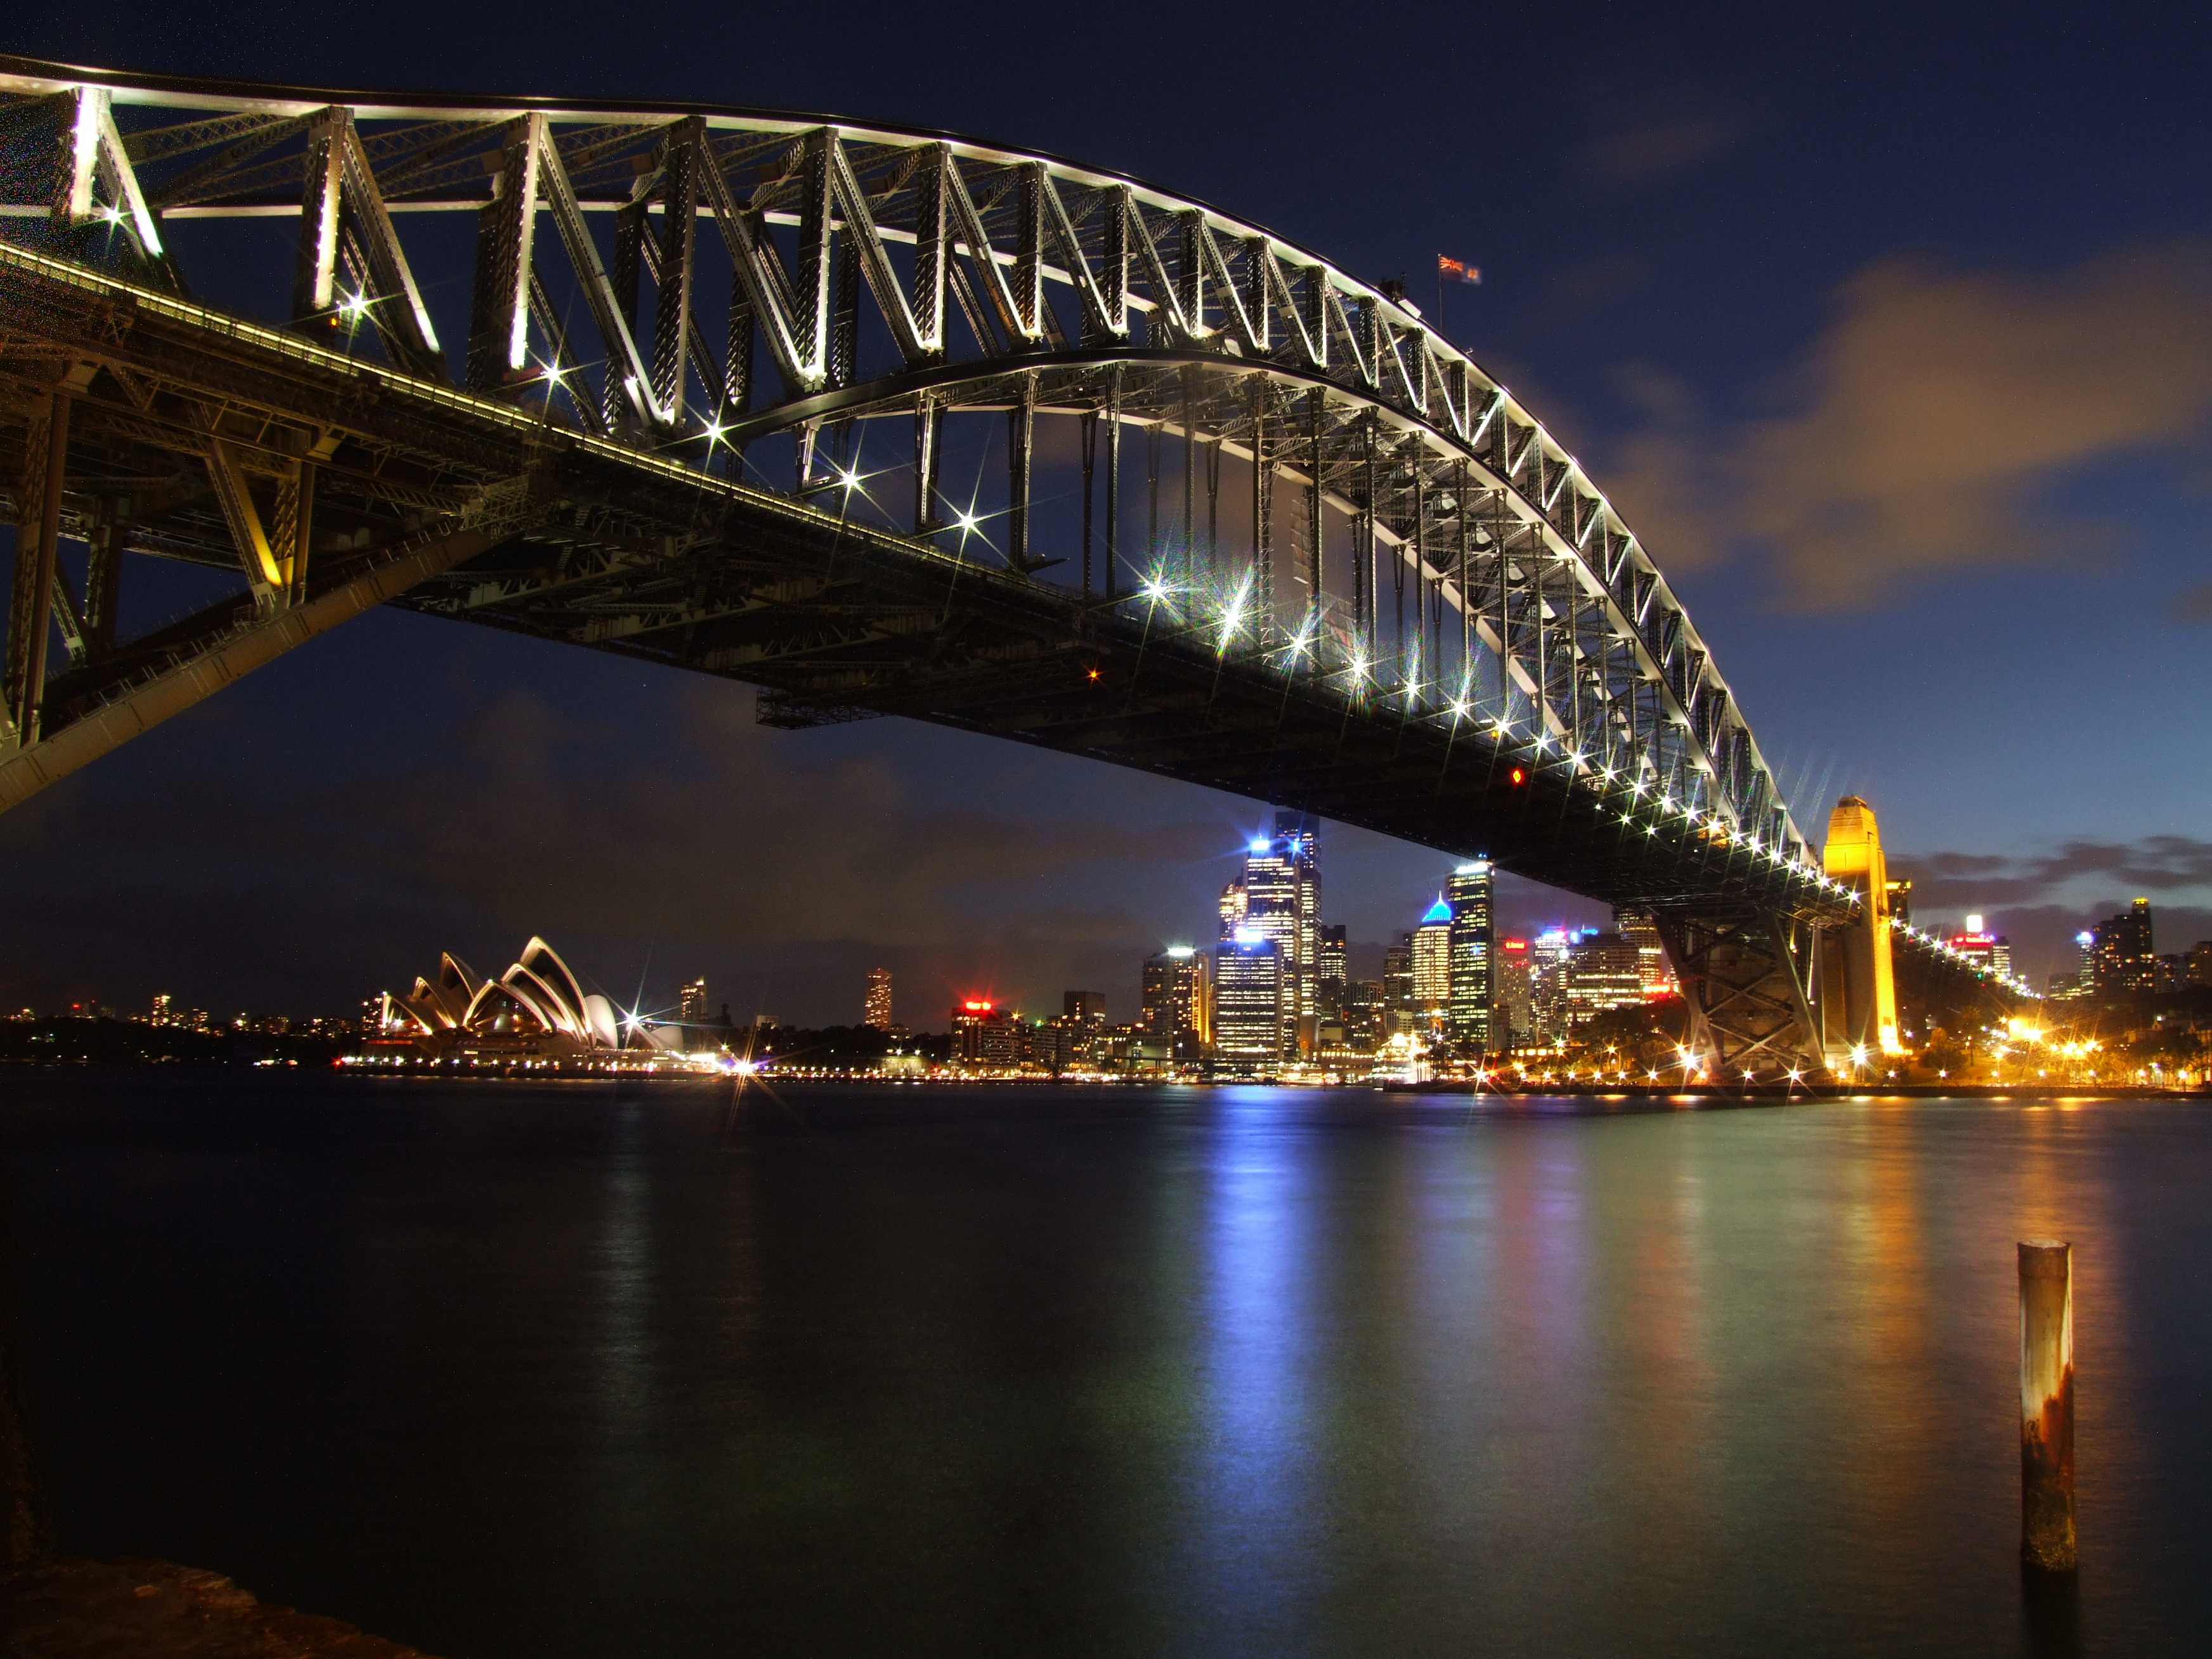 Ashurst names new partners in Sydney and London